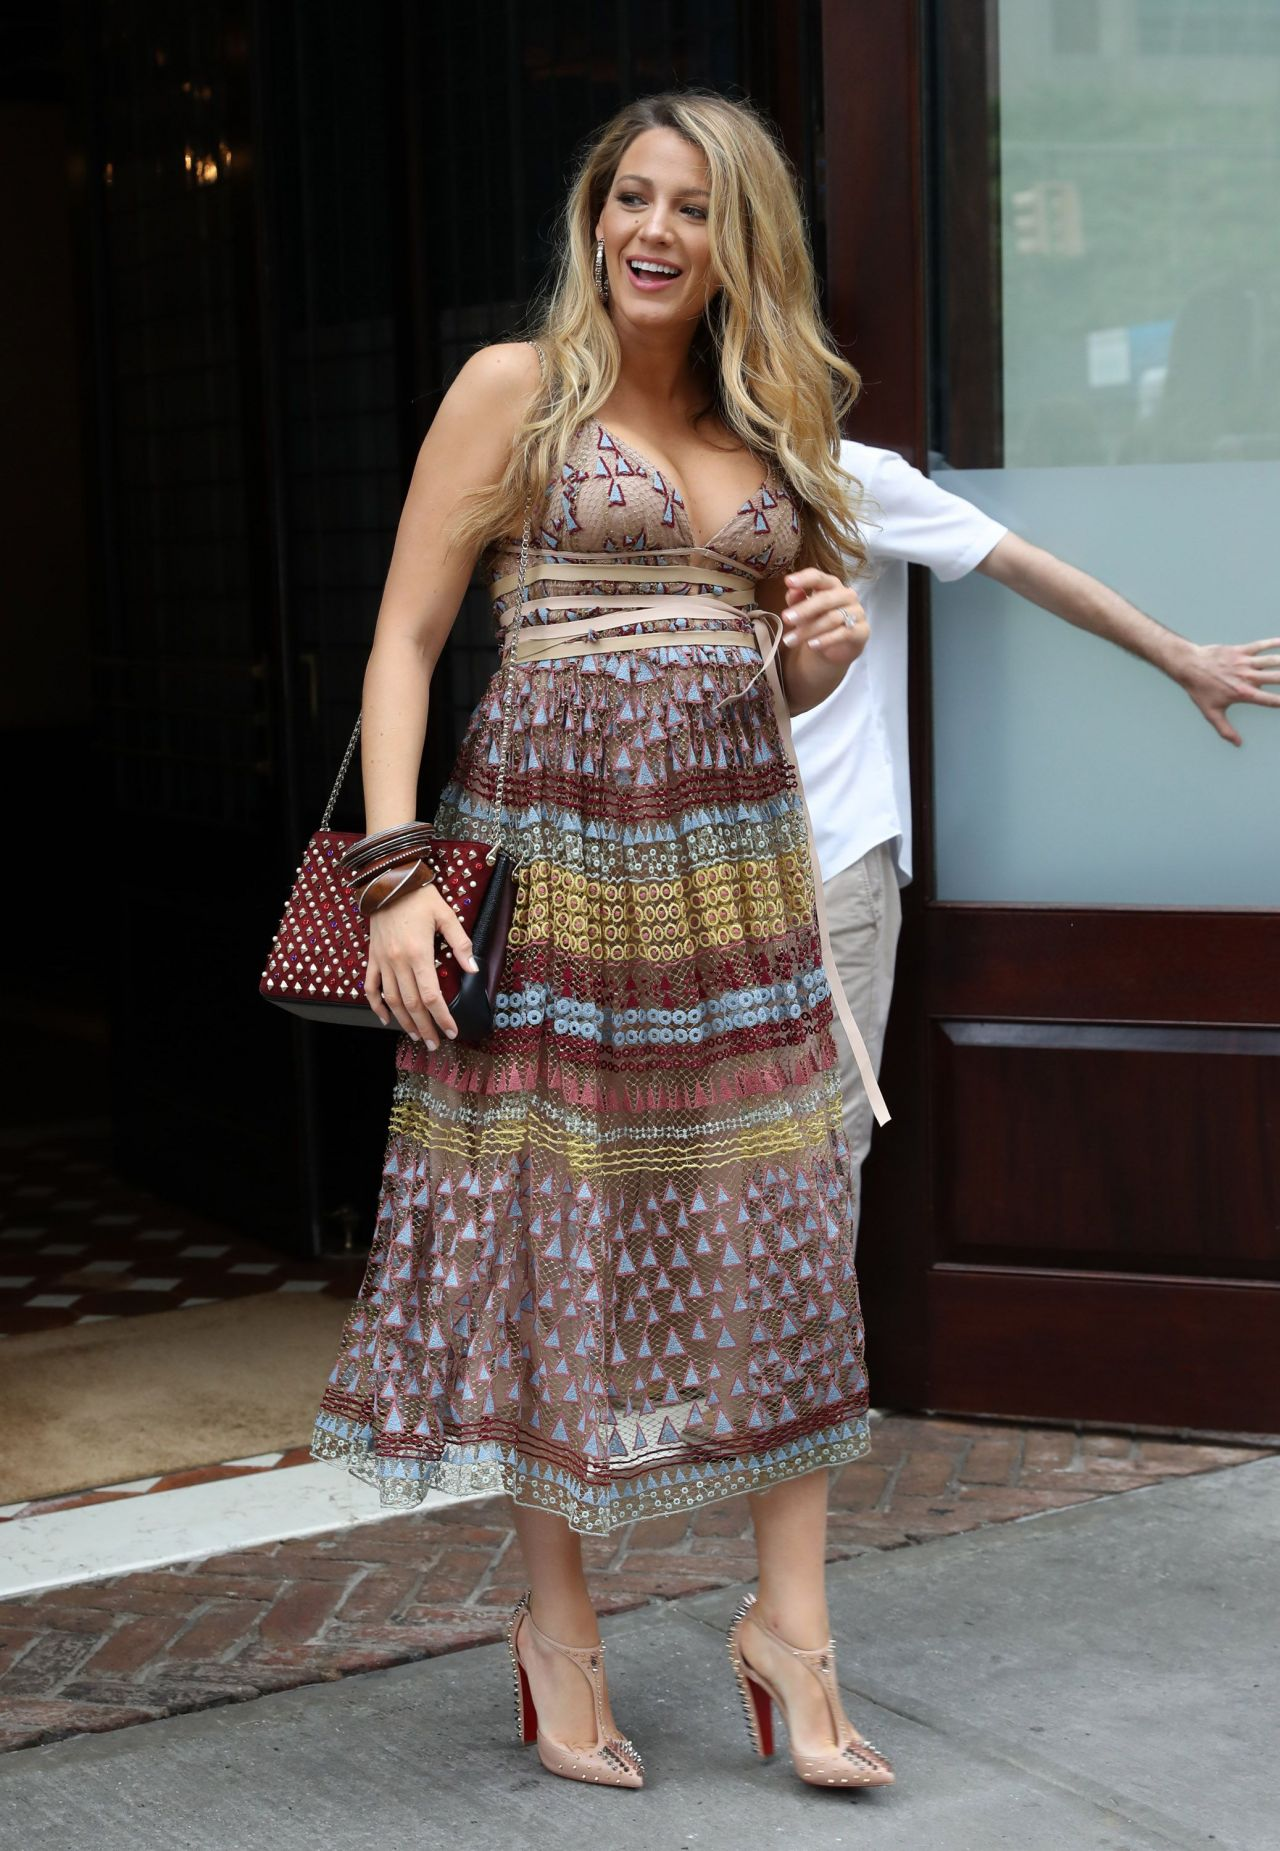 Blake Lively Summer Outfit Nyc 7 13 2016